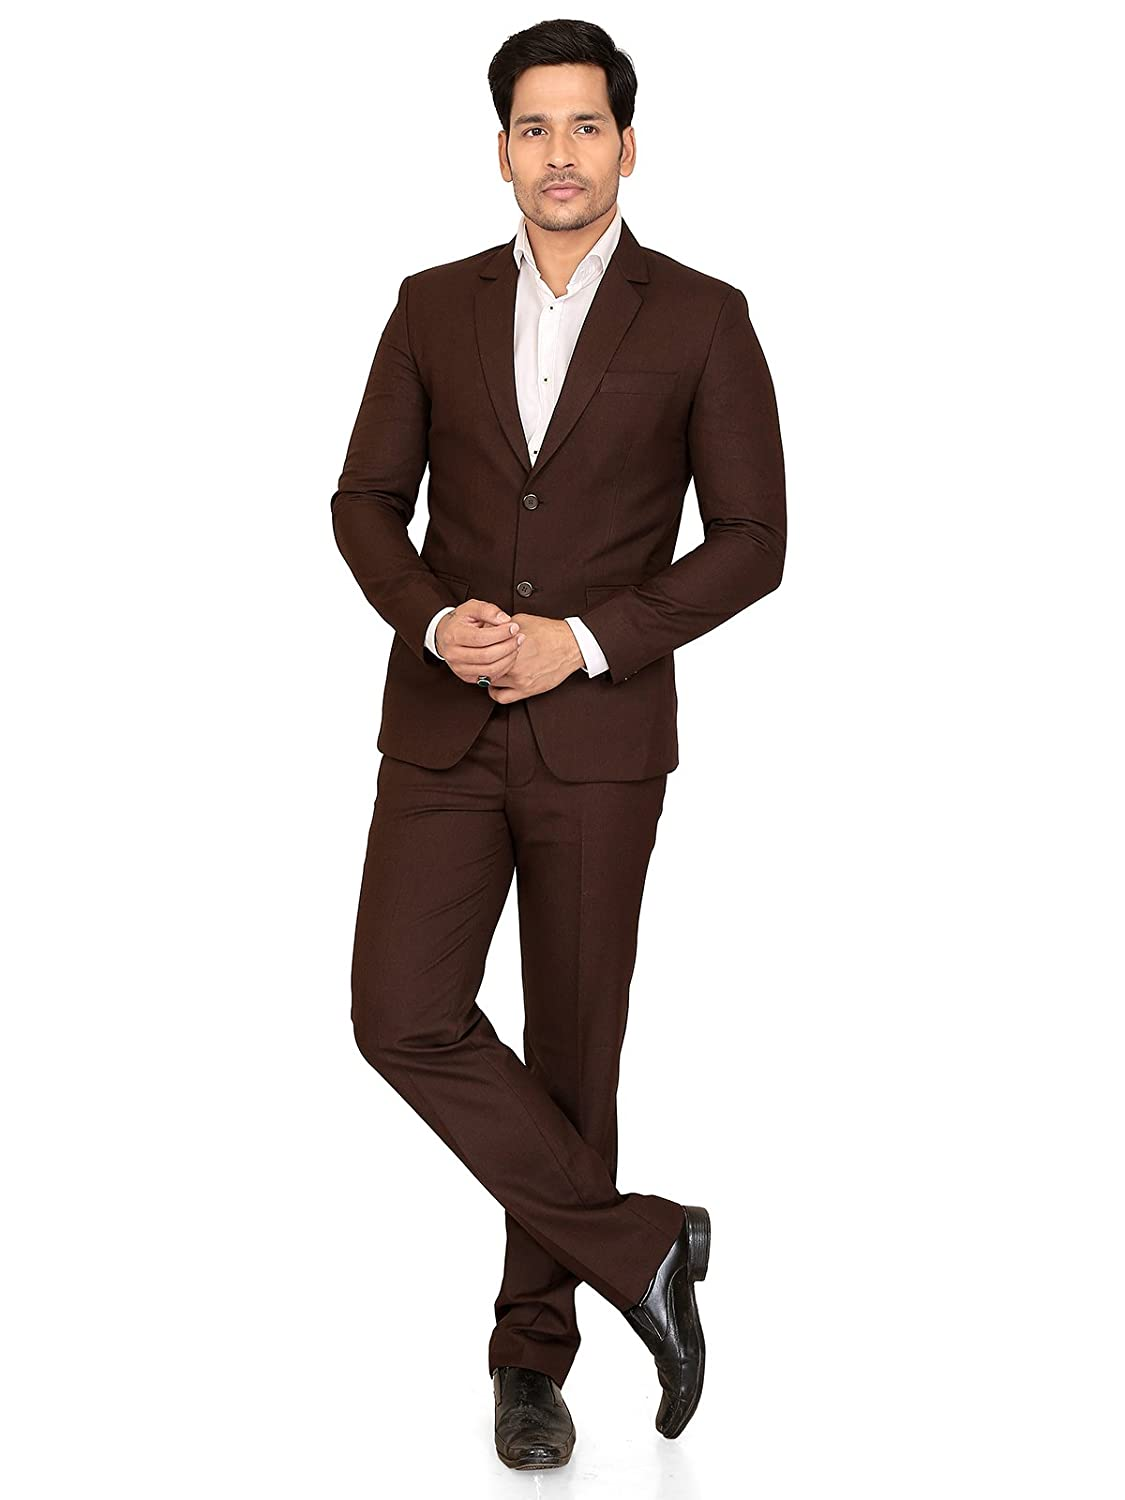 0c287c2fc6a Amazon.in  Suits - Suits   Blazers  Clothing   Accessories